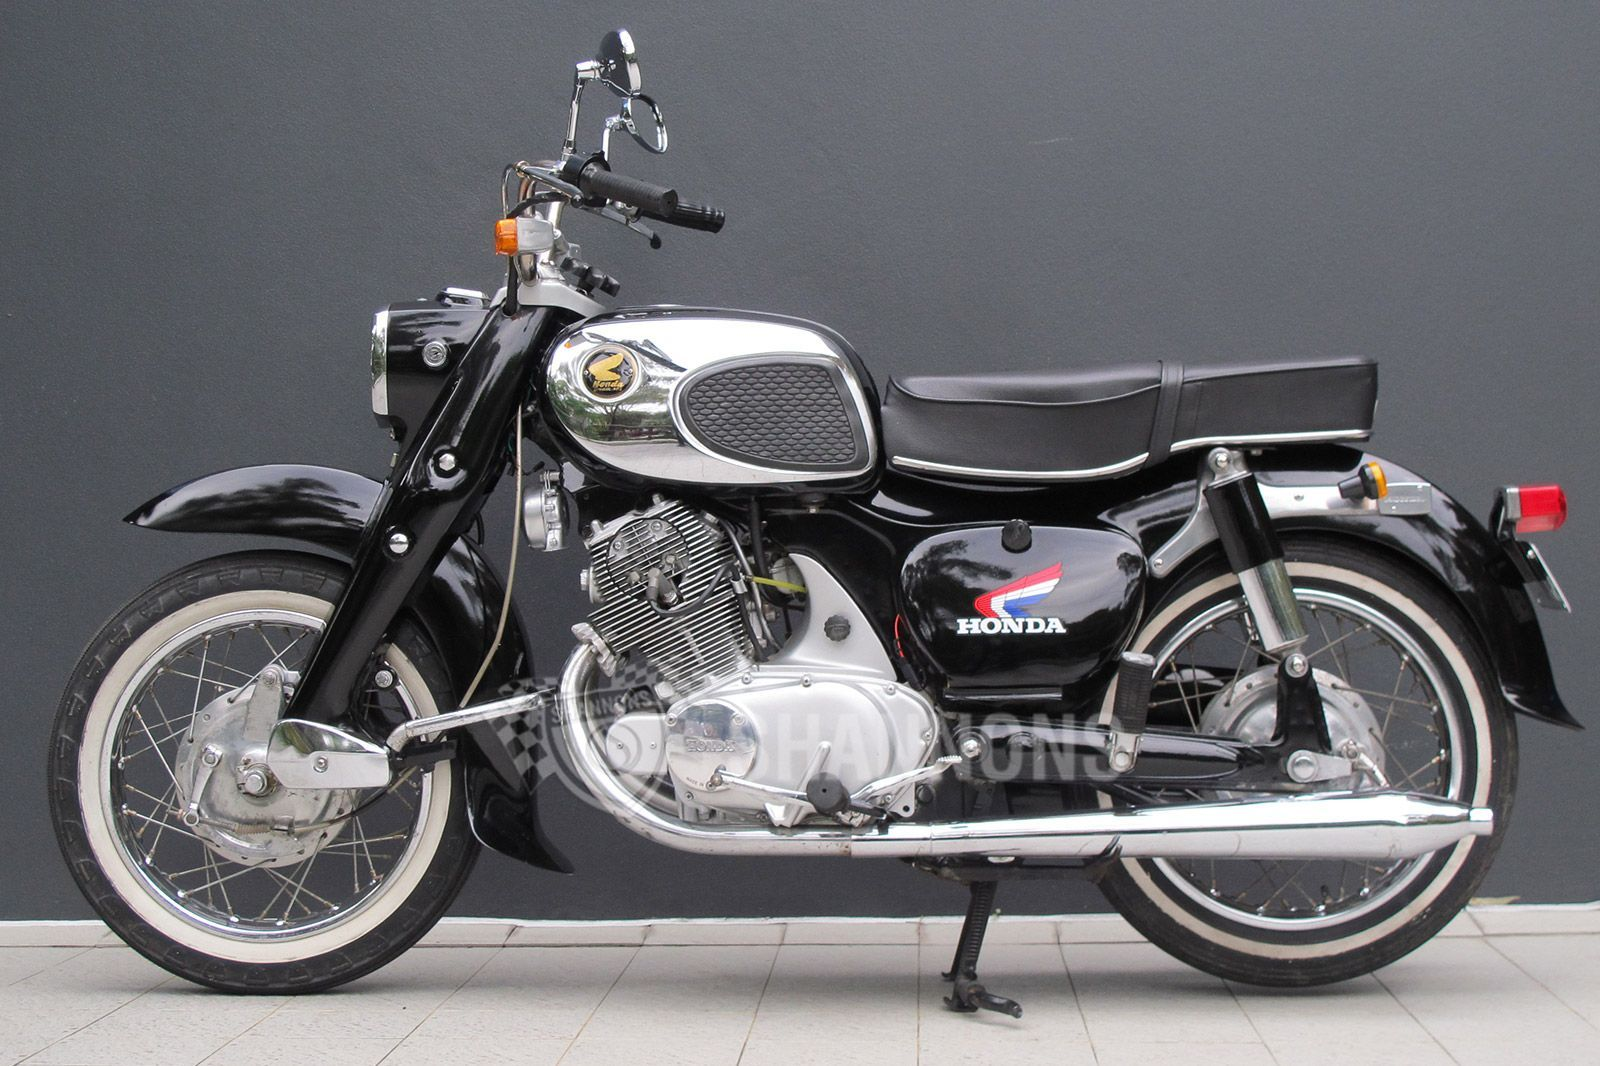 small resolution of honda dream 305cc motorcycle